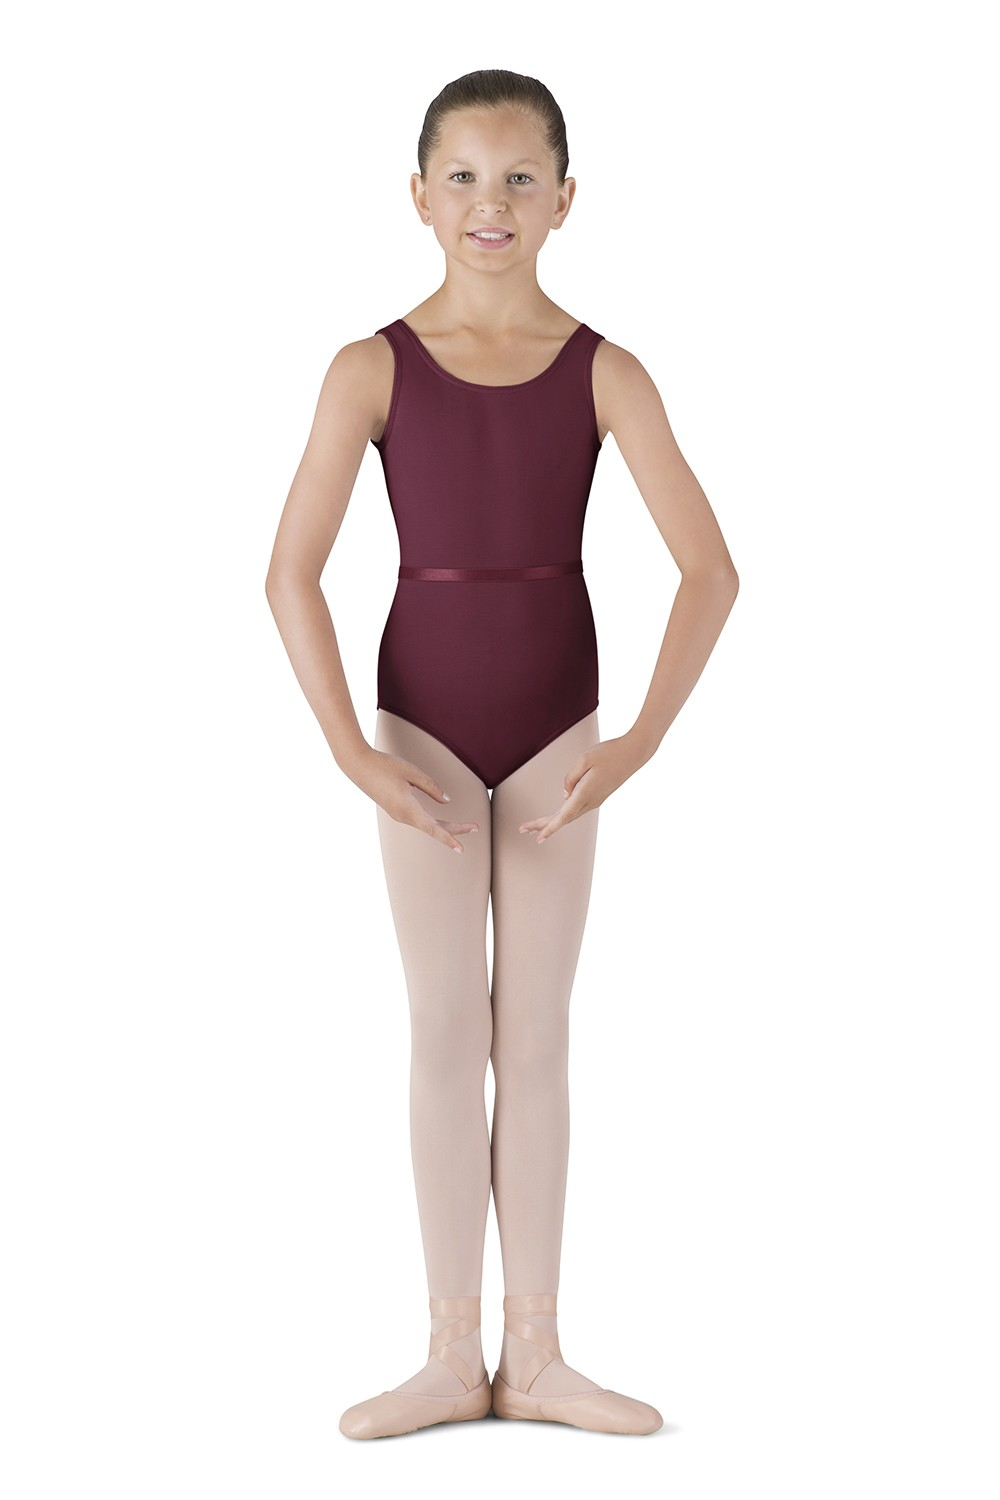 Belted Tank Leotard - Girls Children's Dance Uniforms